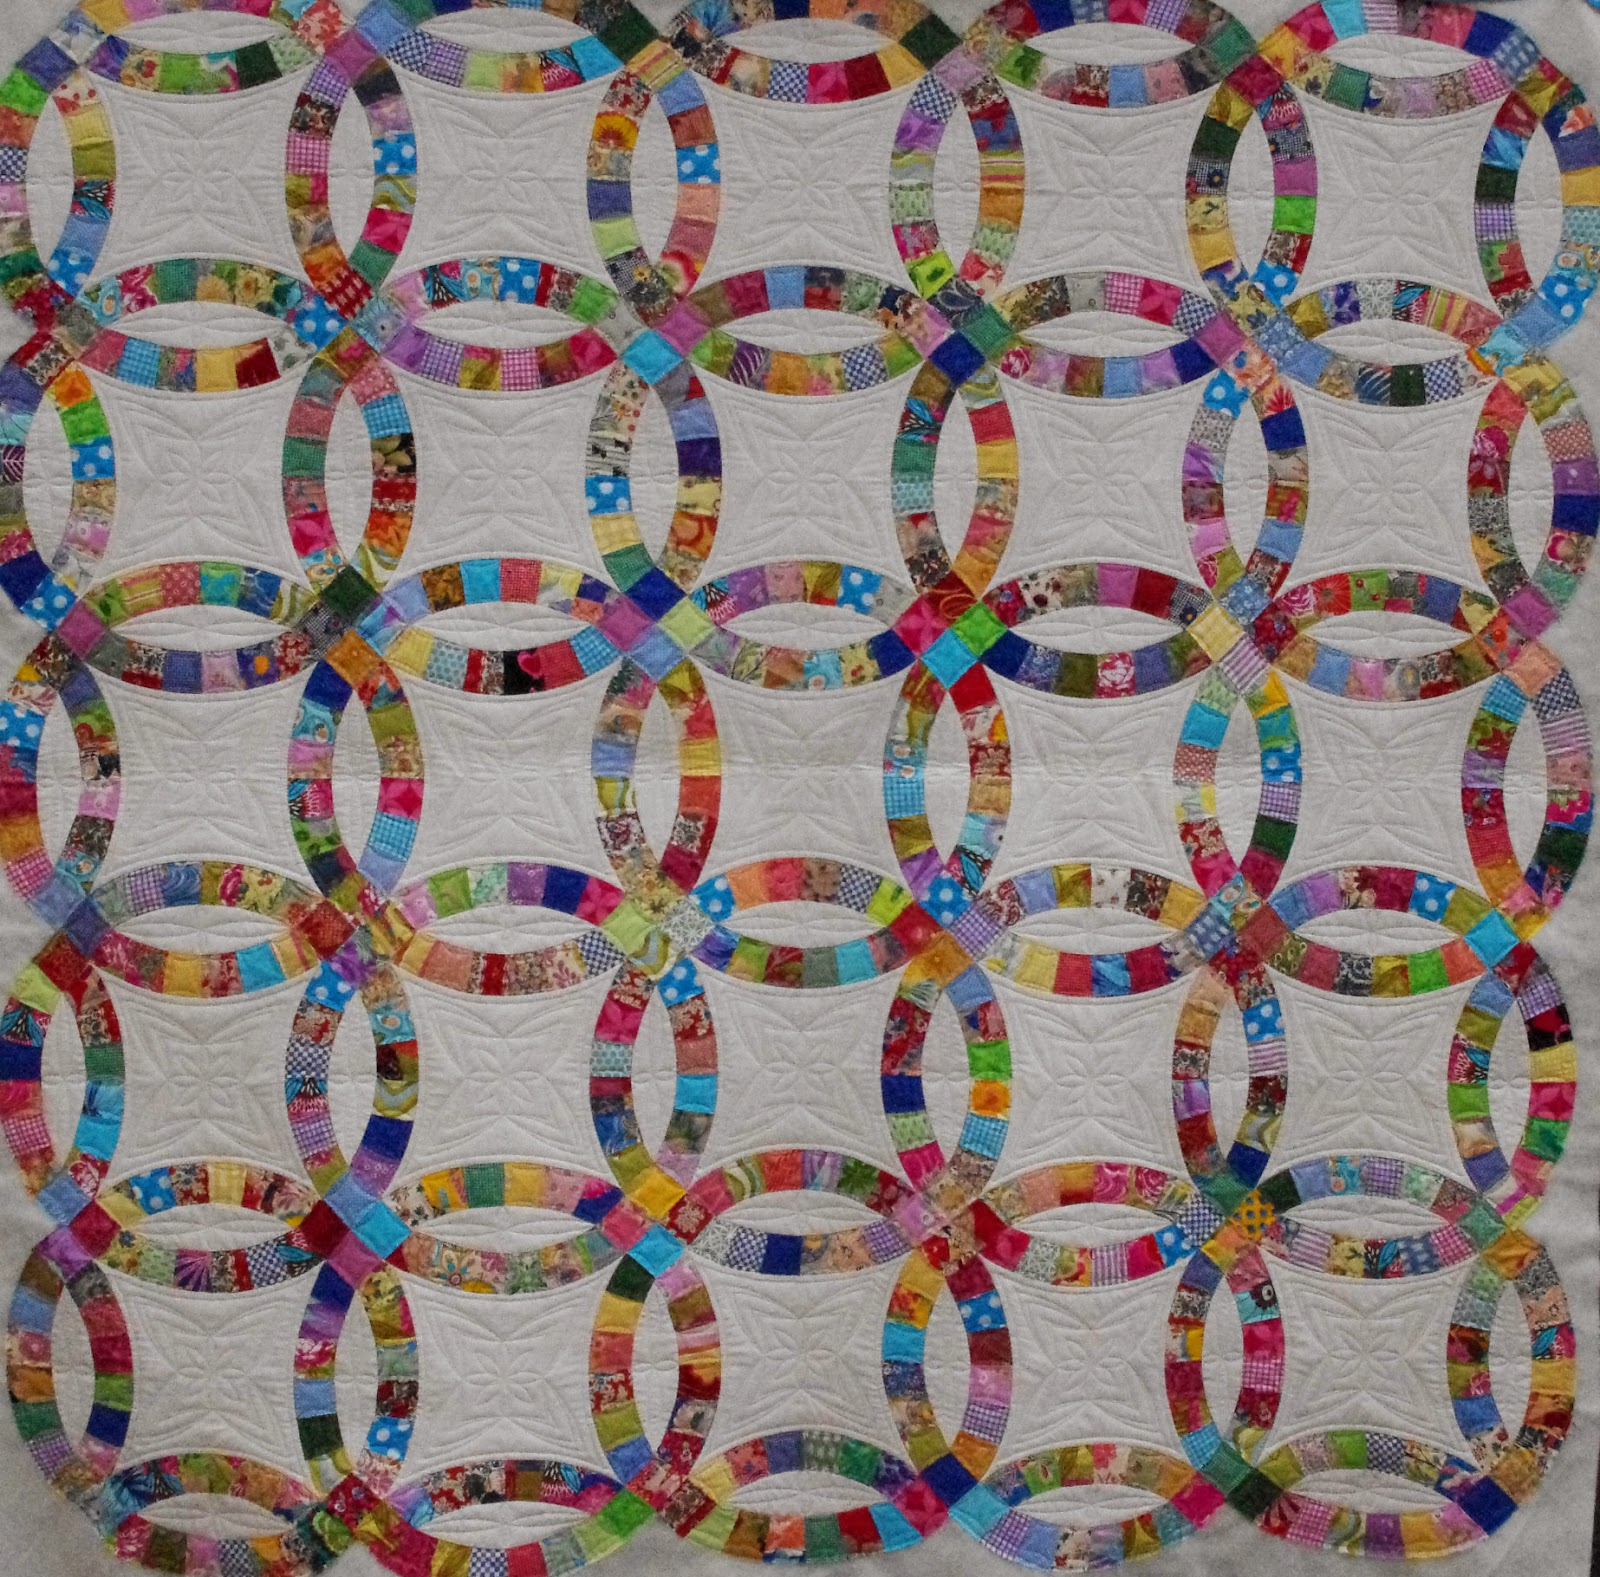 Wedding Ring Quilts: Quilts On Bastings: Double Wedding Ring Quilt